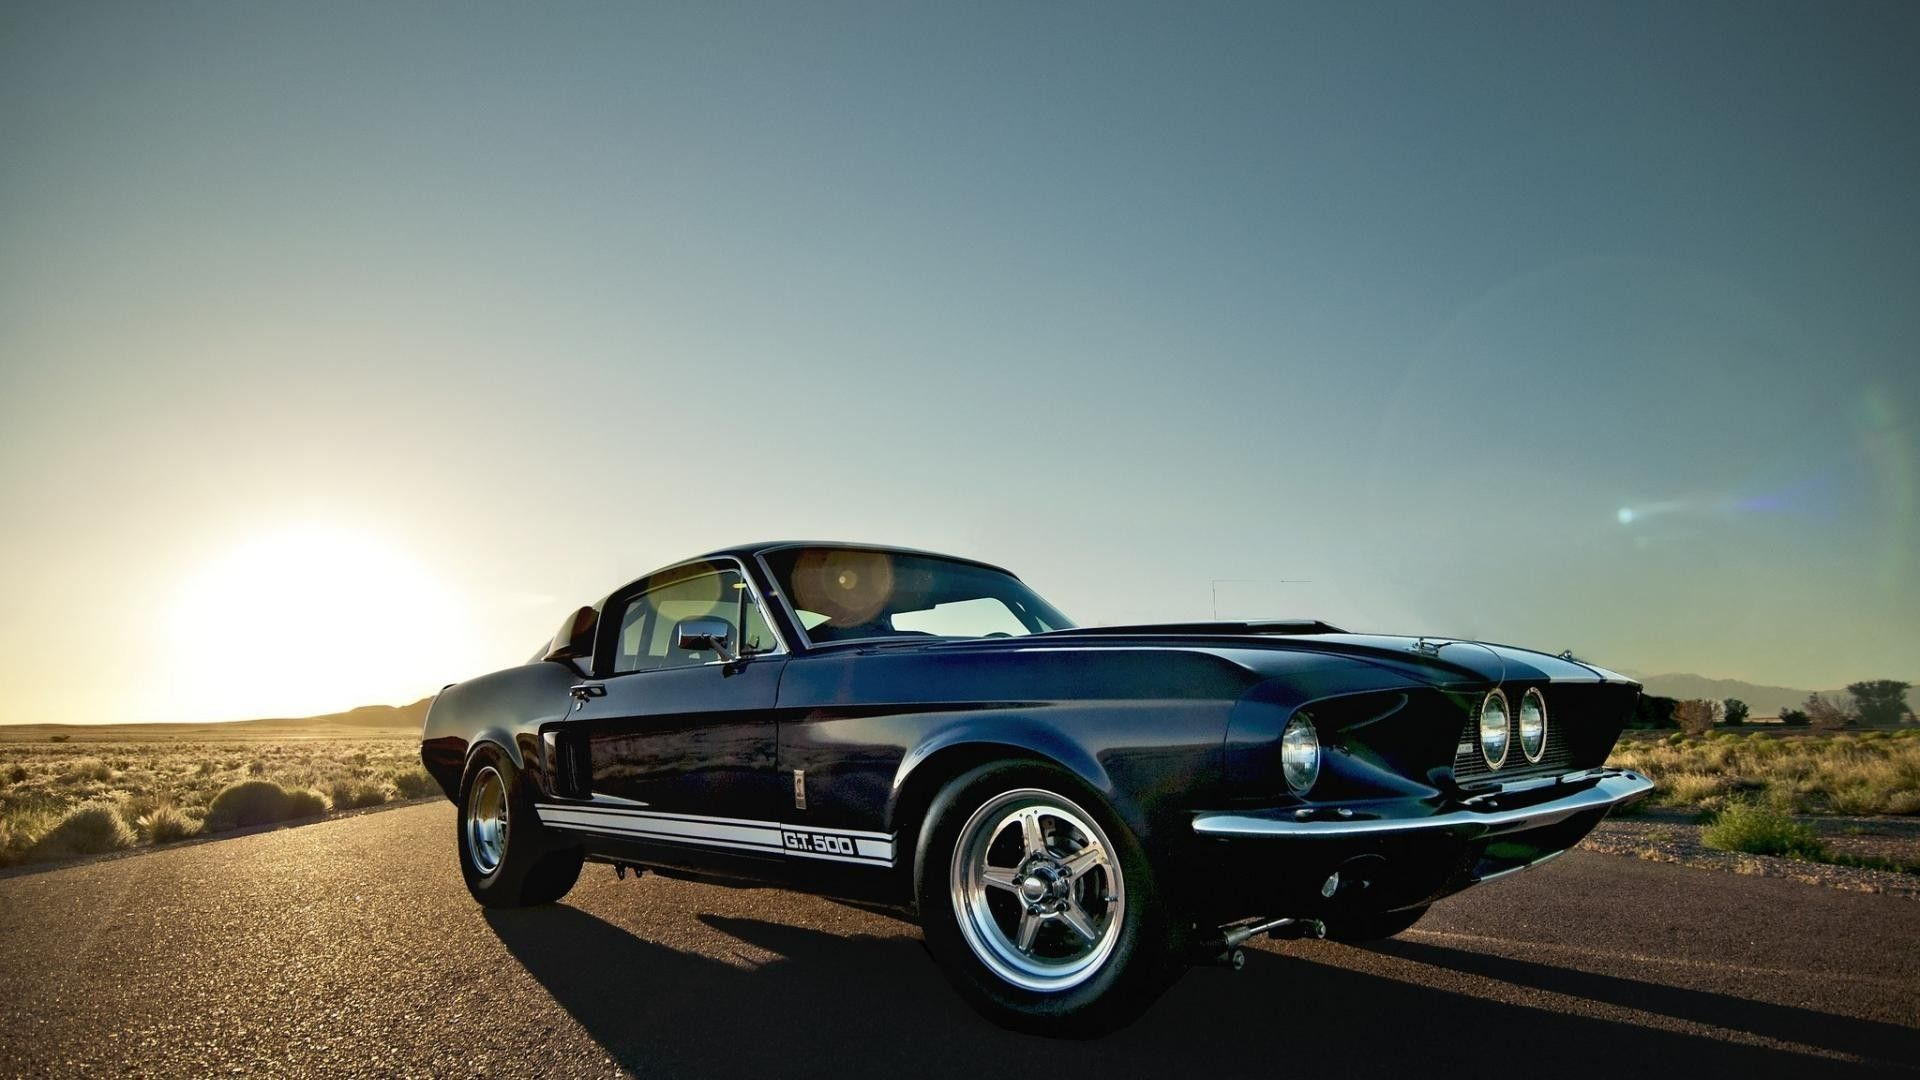 Mustang Wallpaper For Android P Cars Pinterest Black